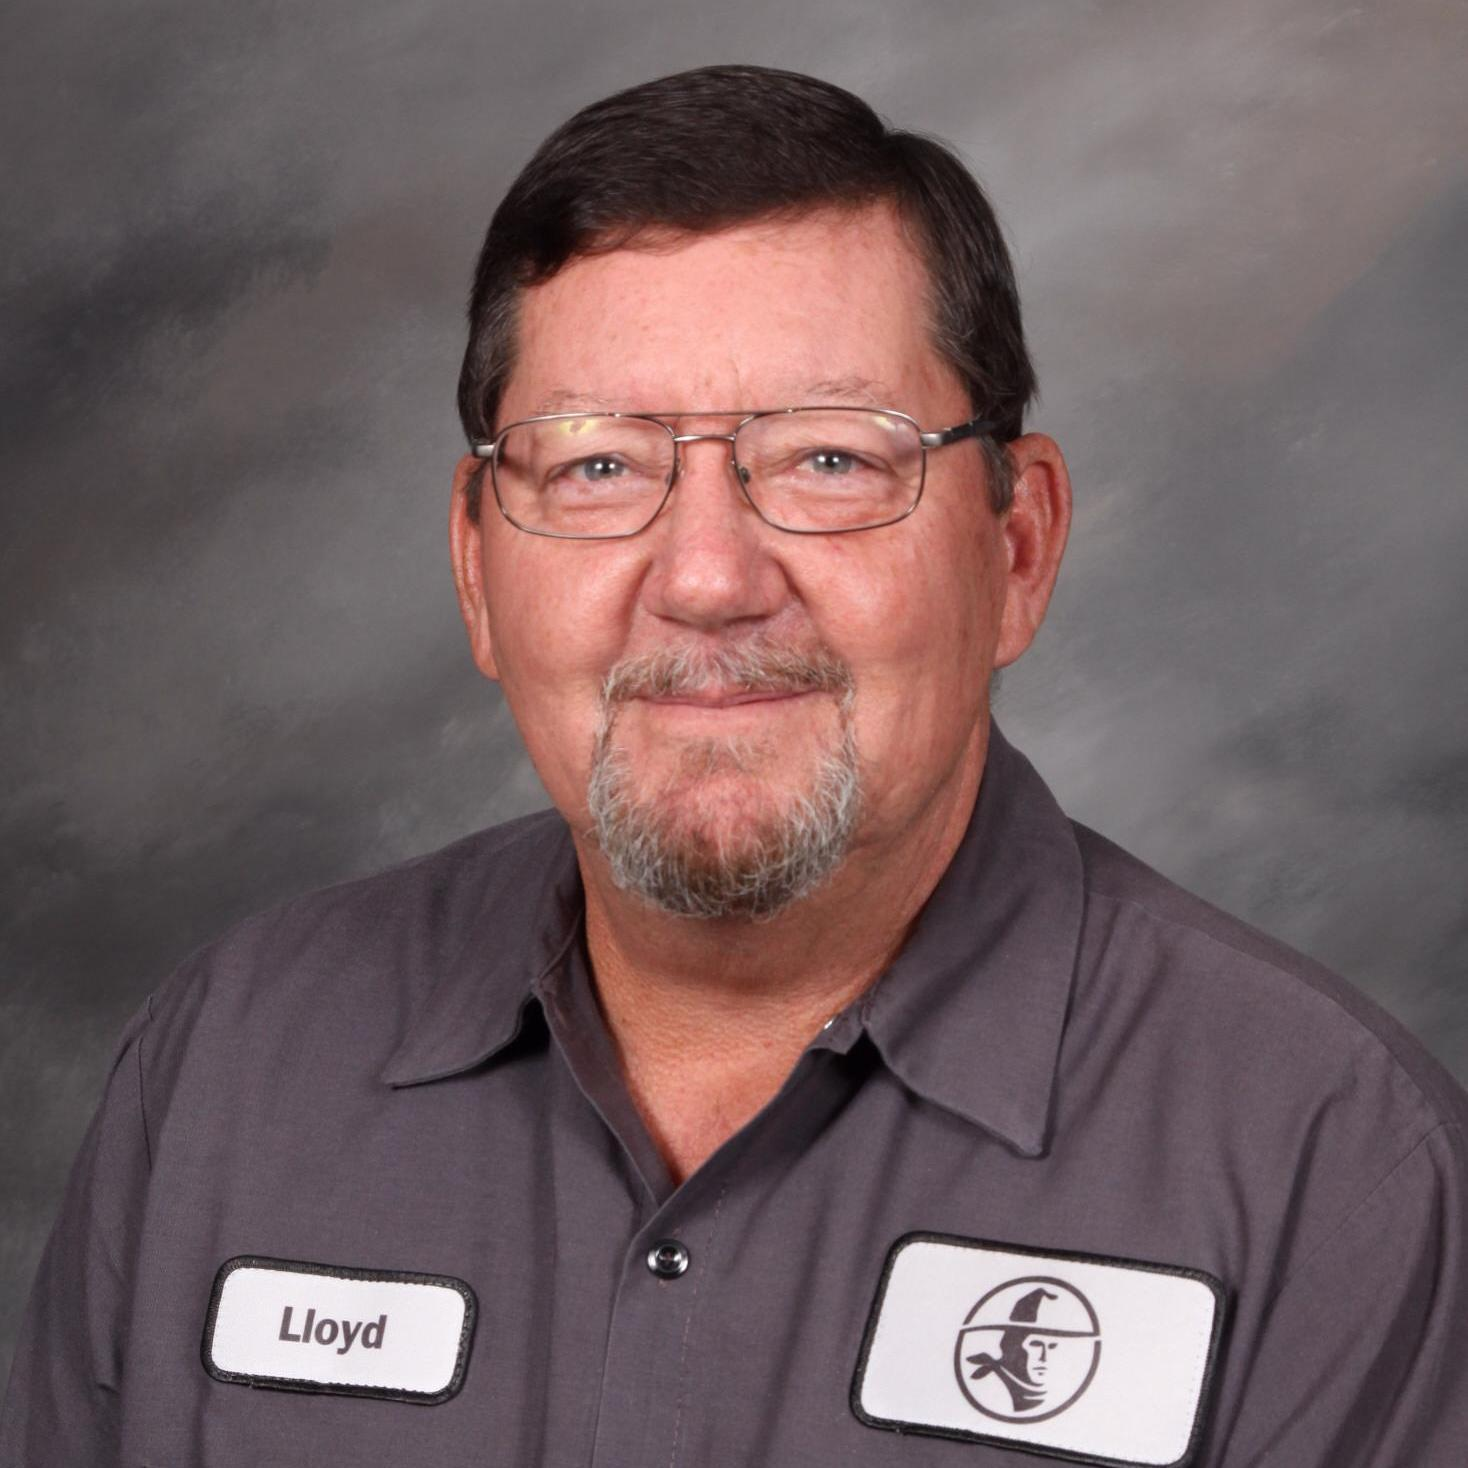 Lloyd DeShong's Profile Photo